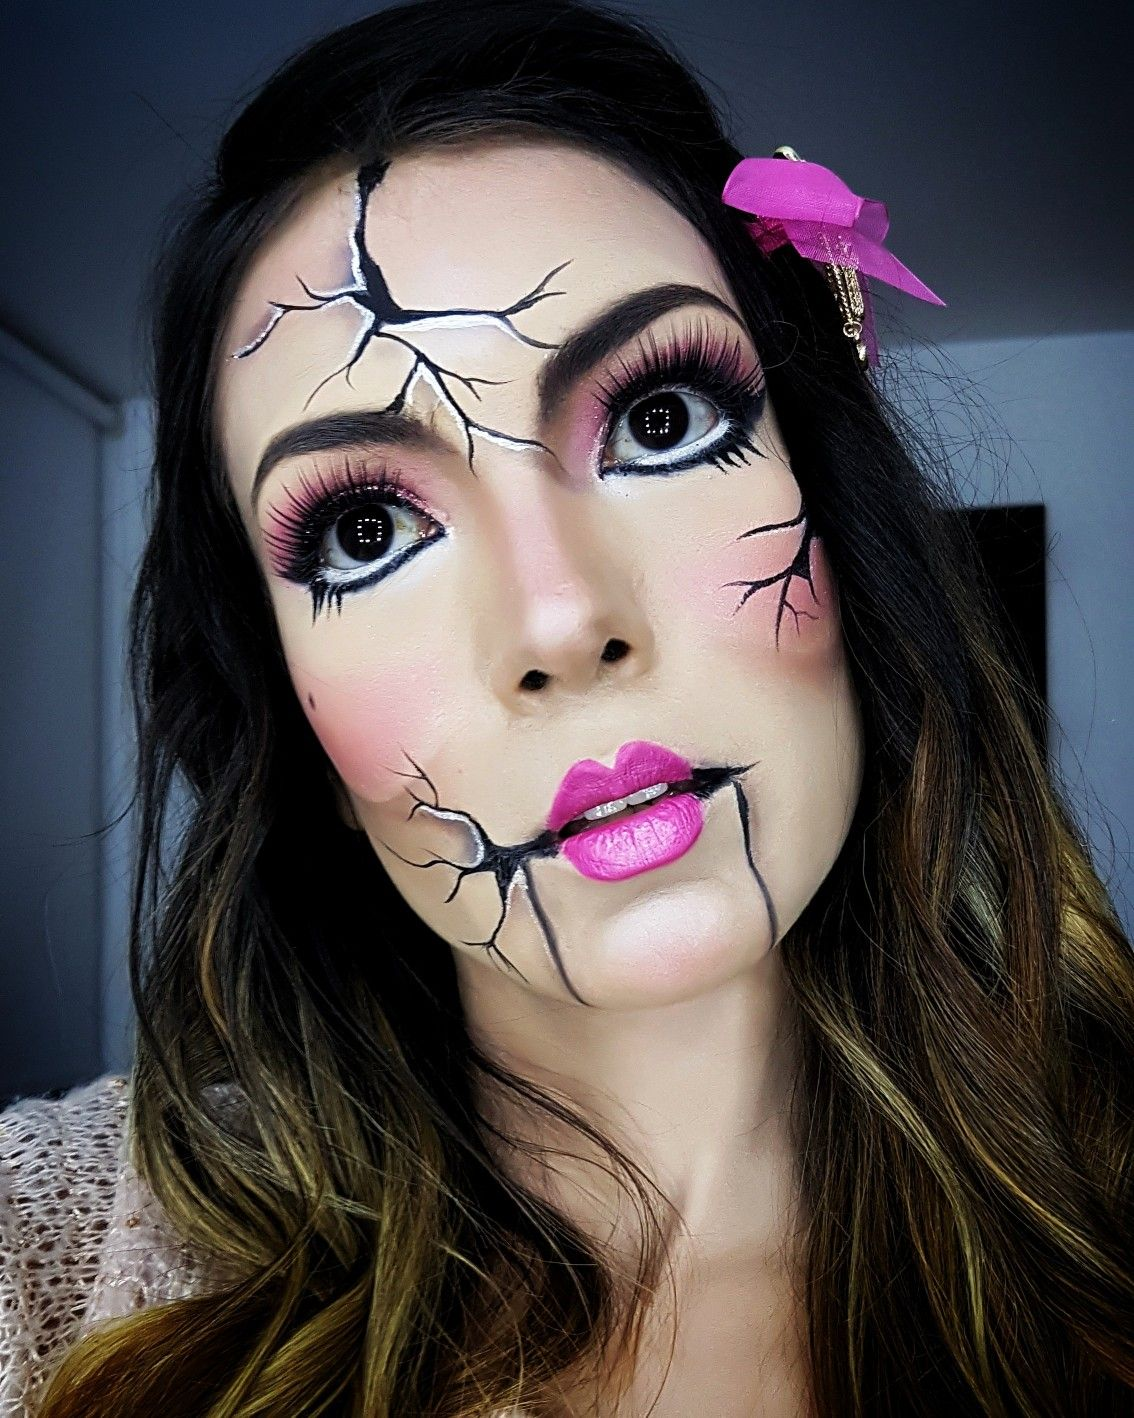 Broken doll halloween makeup by wakeupbeauty10z en IG